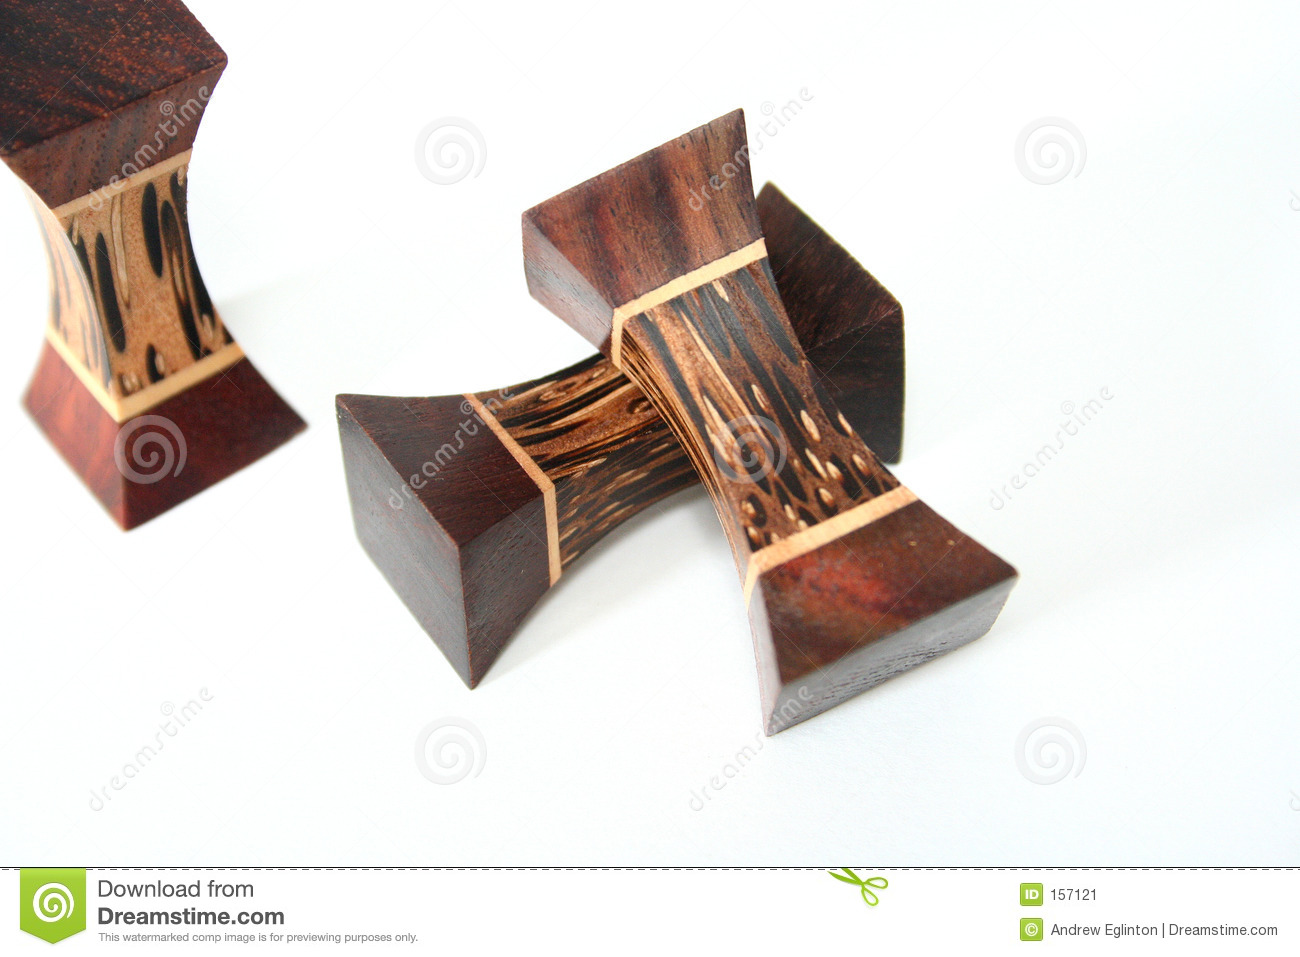 decorative wood blocks - Decorative Wood